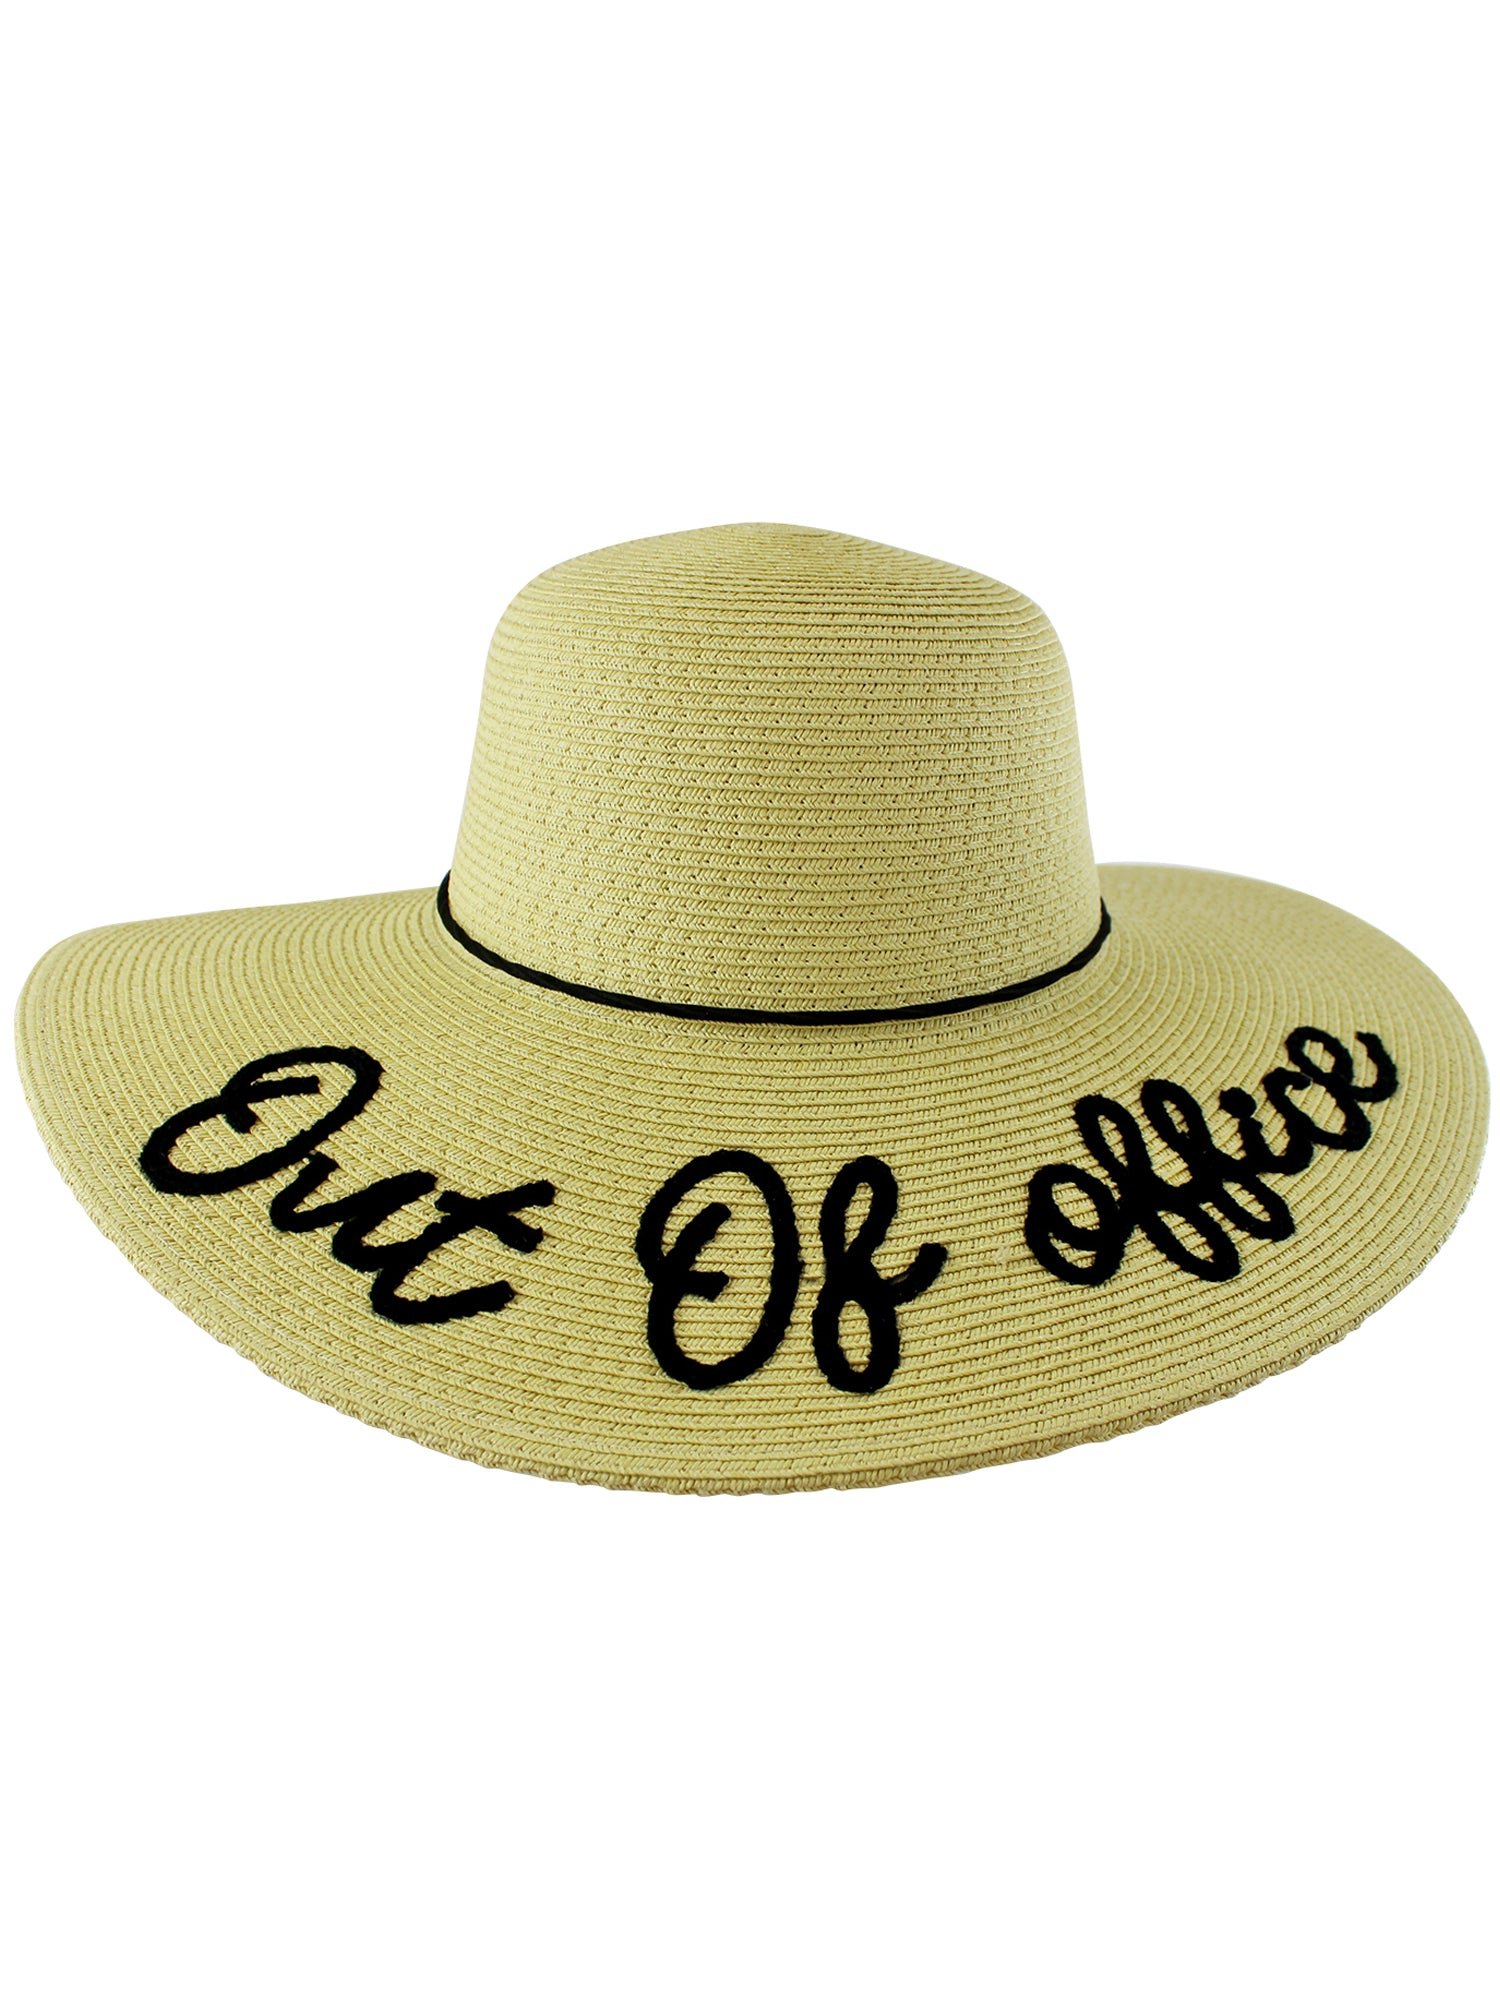 c58afb01a0 Out Of Office Embroidered Beach Floppy Sun Hat – Luxury Divas